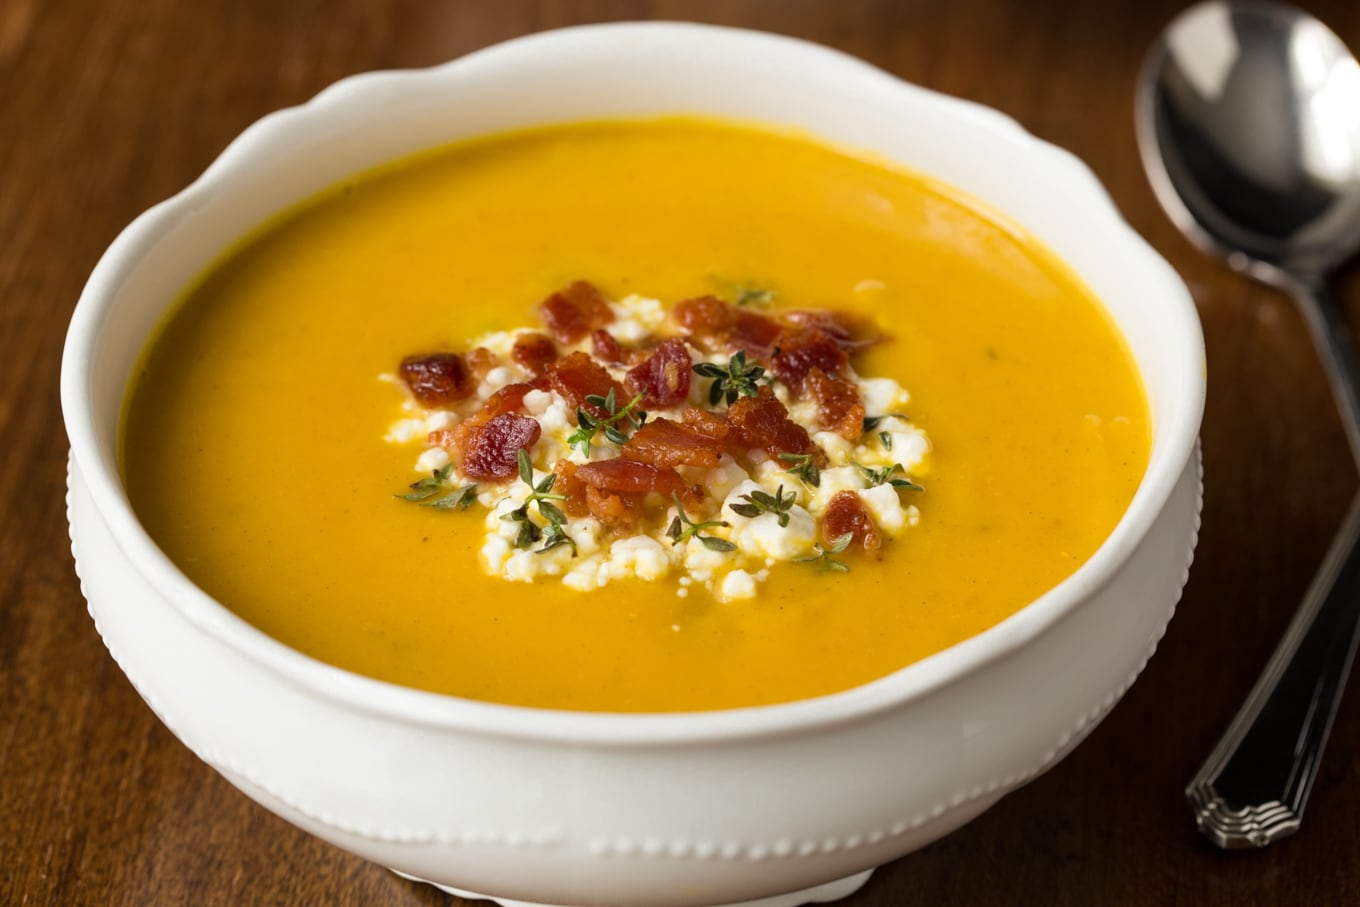 Healthy, elegant and full of flavor, this delicious Roasted Butternut Bacon Soup is perfect for lunches, casual dinners and meals on the run! It also makes a wonderful appetizer soup! thecafesucrefarine.com